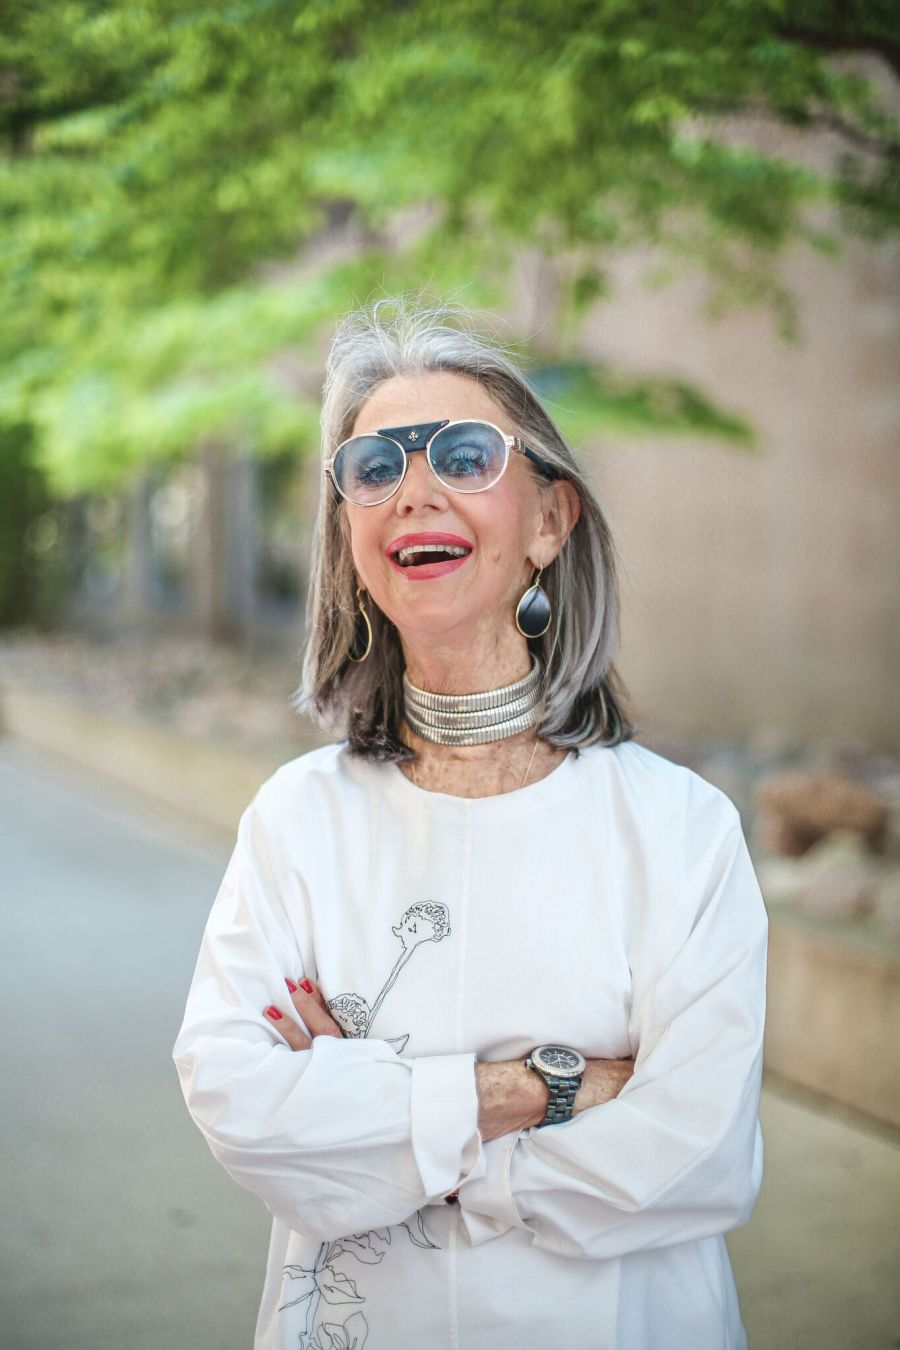 How to Remain Visible & Bloom After 50